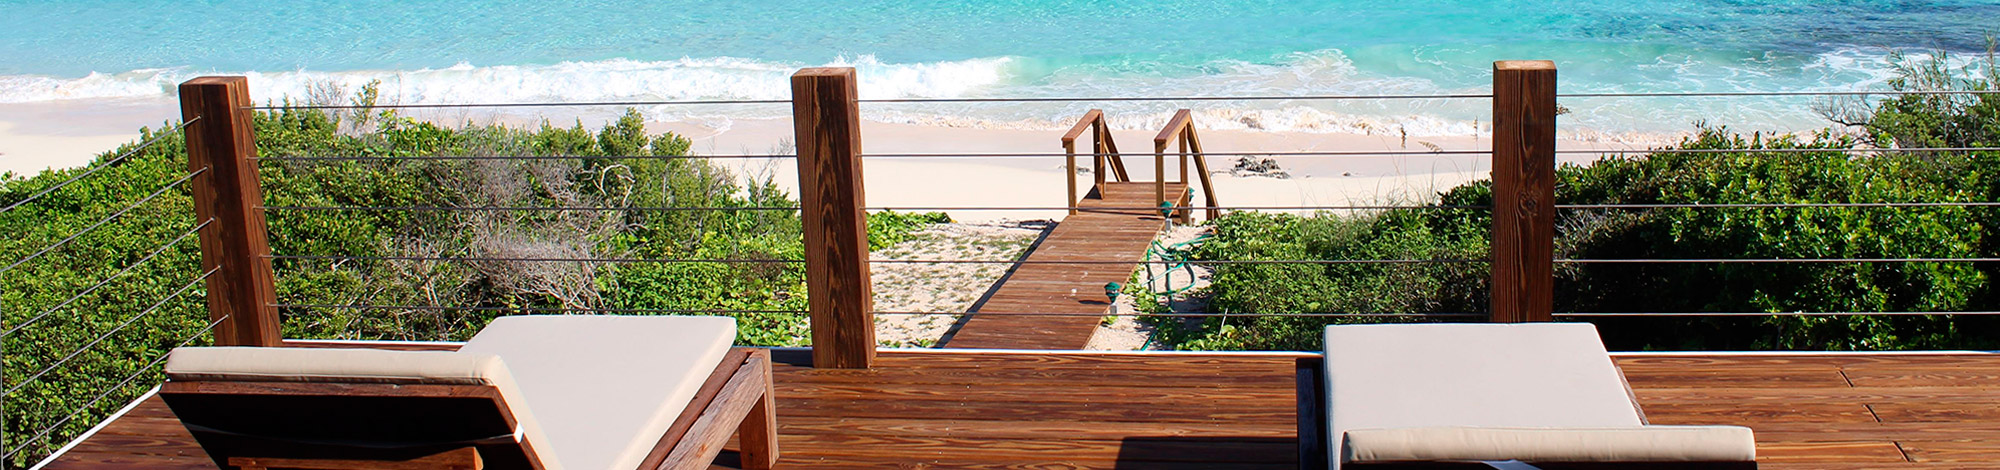 Love Beach Vacation Rental in Guana Cay